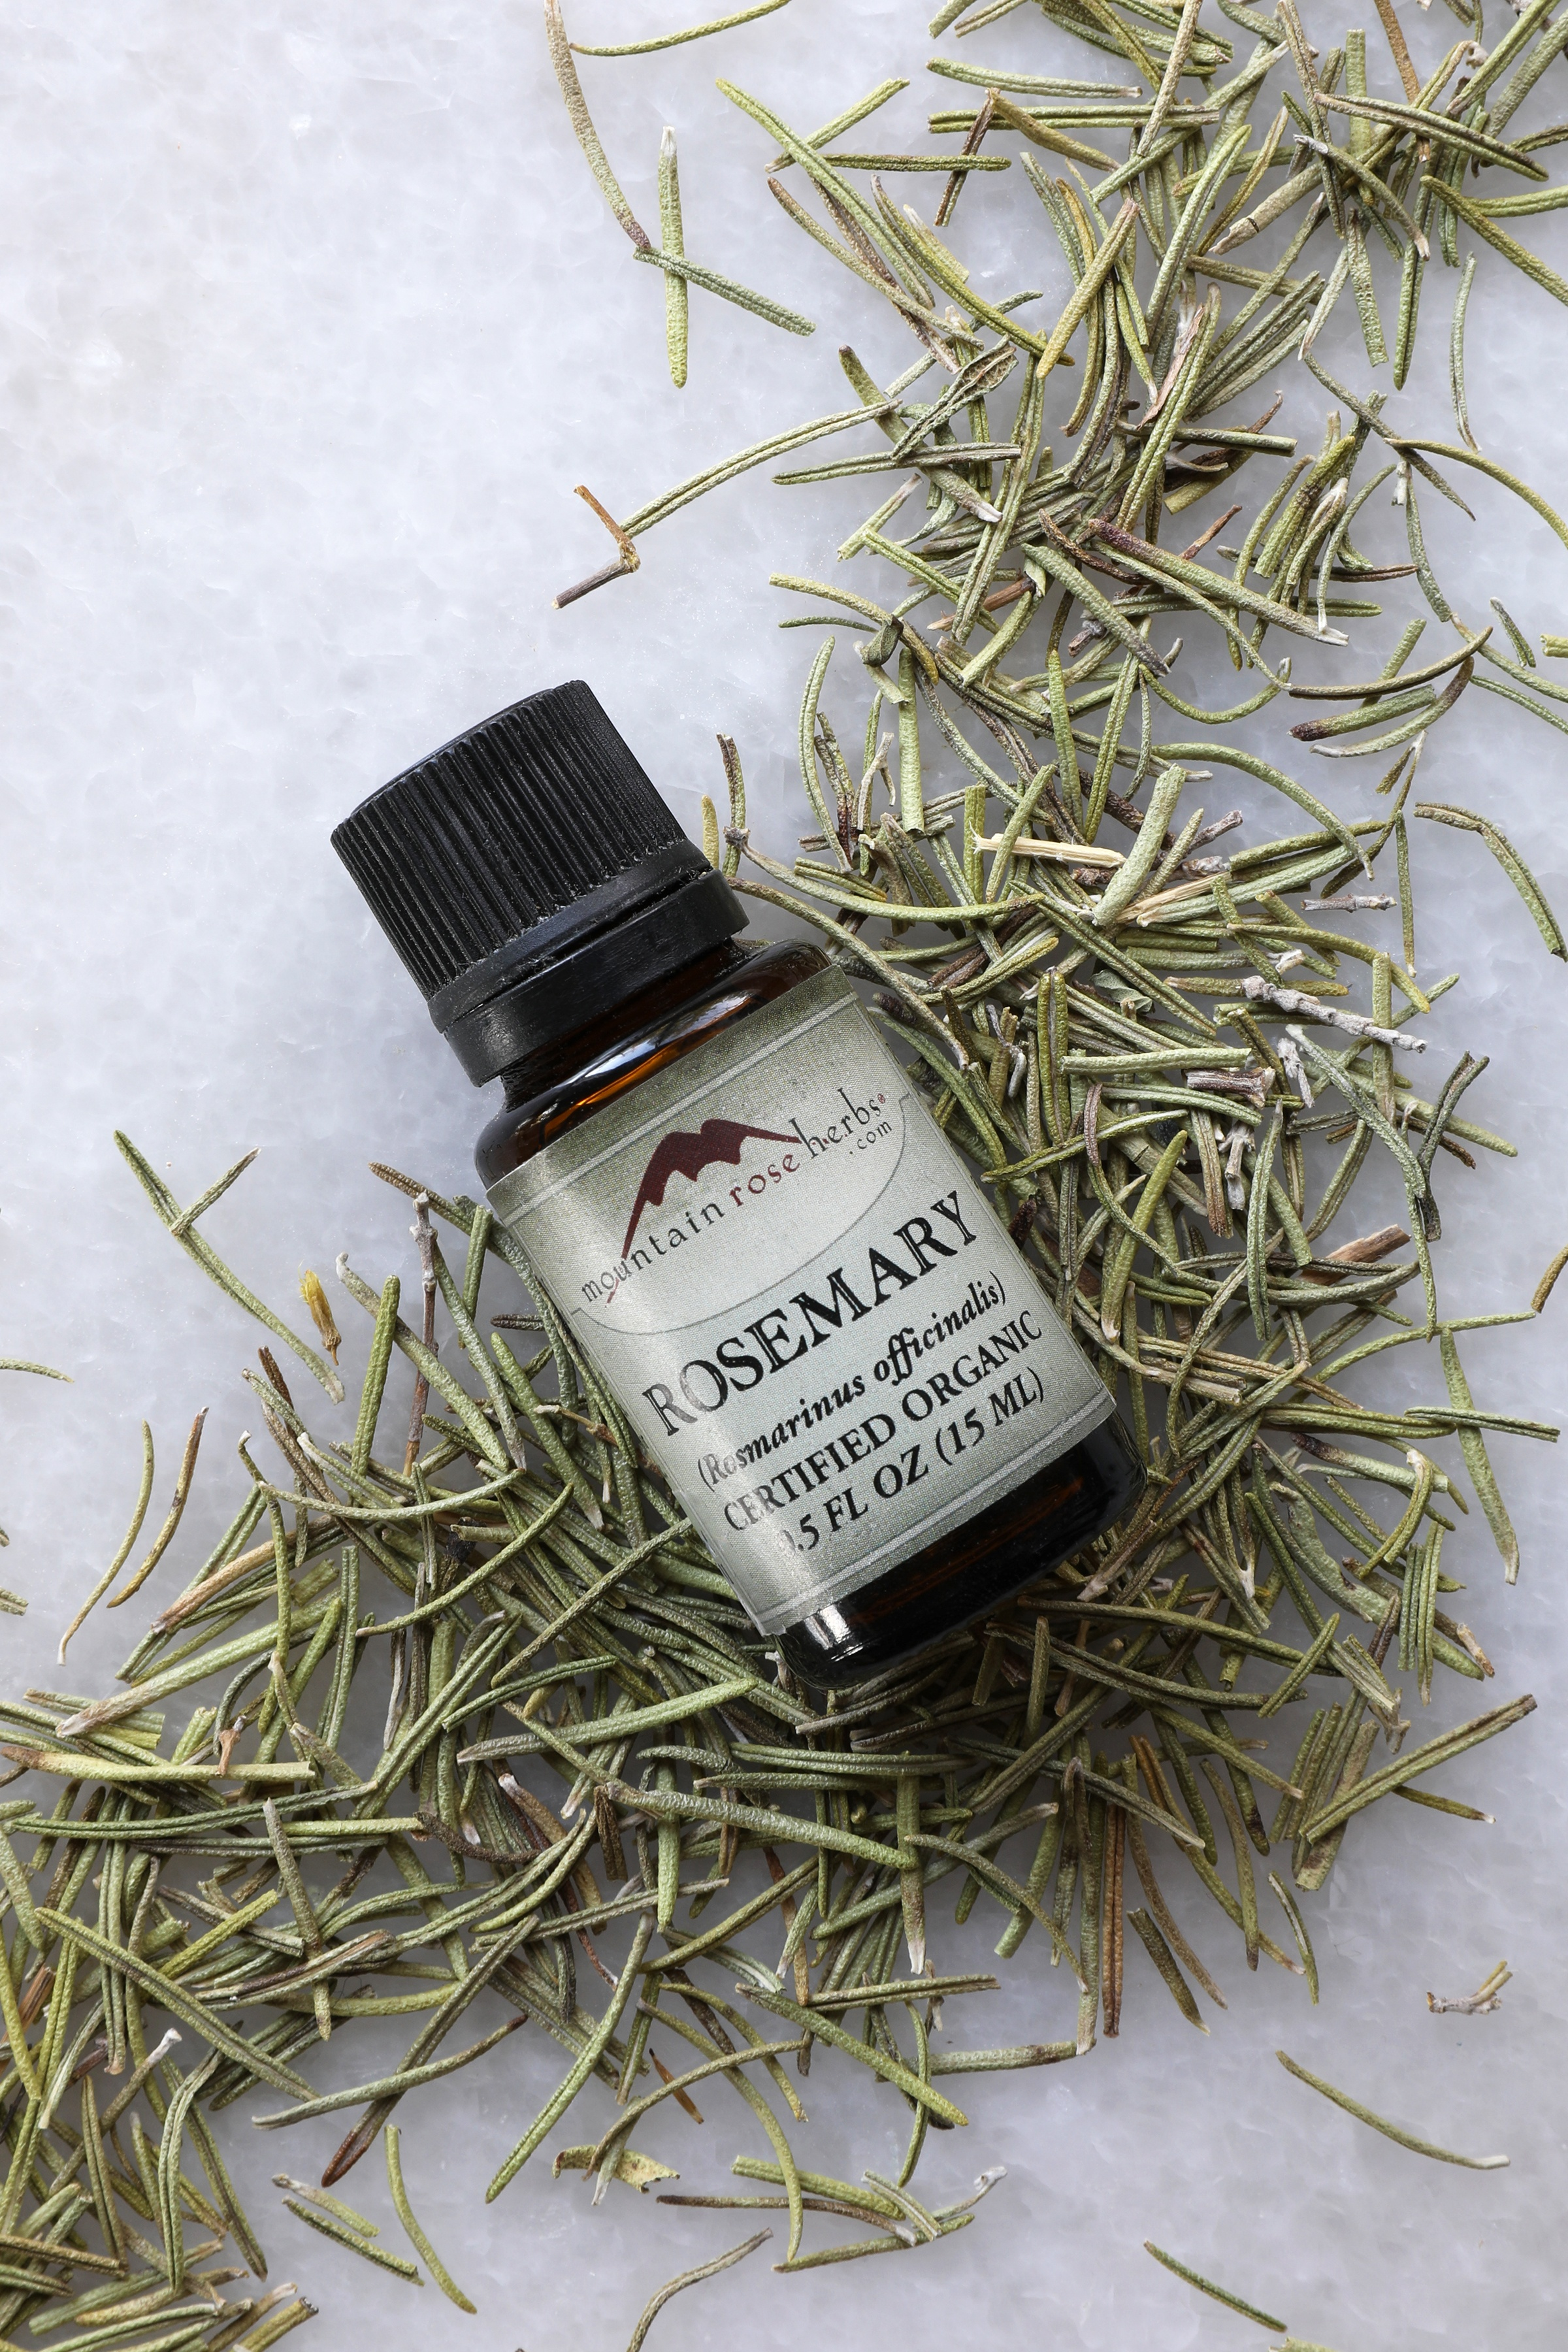 1/2 oz. bottle of rosemary essential oil laying on rosemary leaves